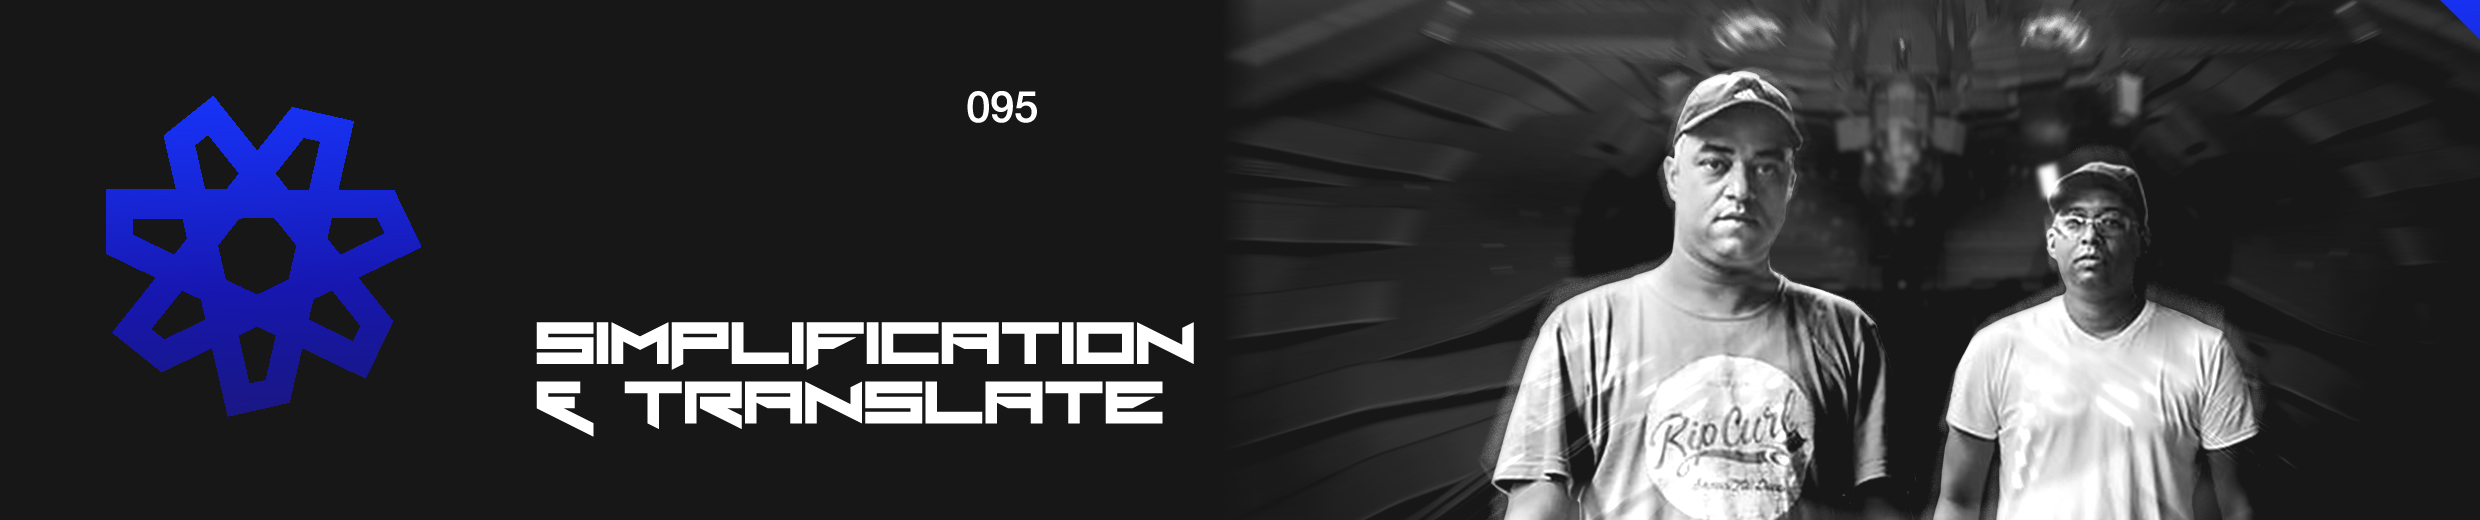 Cybernetic Podcast 095 by Simplification & Translate